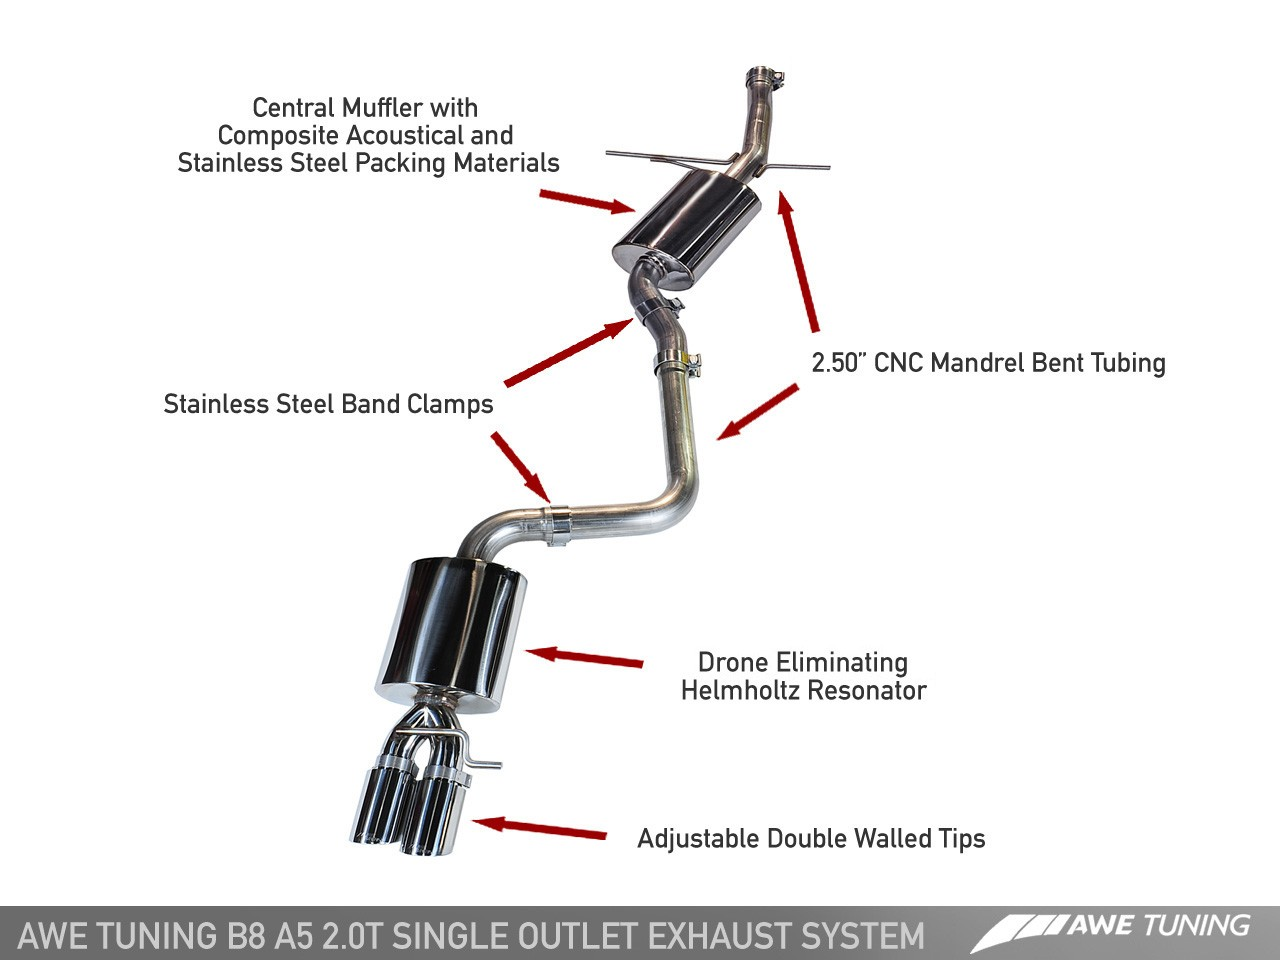 366058275948639286 furthermore 2tomj 2001 Toyota Echo Muffler Exhaust System likewise Mini furthermore Discussion T50205 ds651805 also Series 60 Fuel Pressure Sensor. on exhaust system for cars